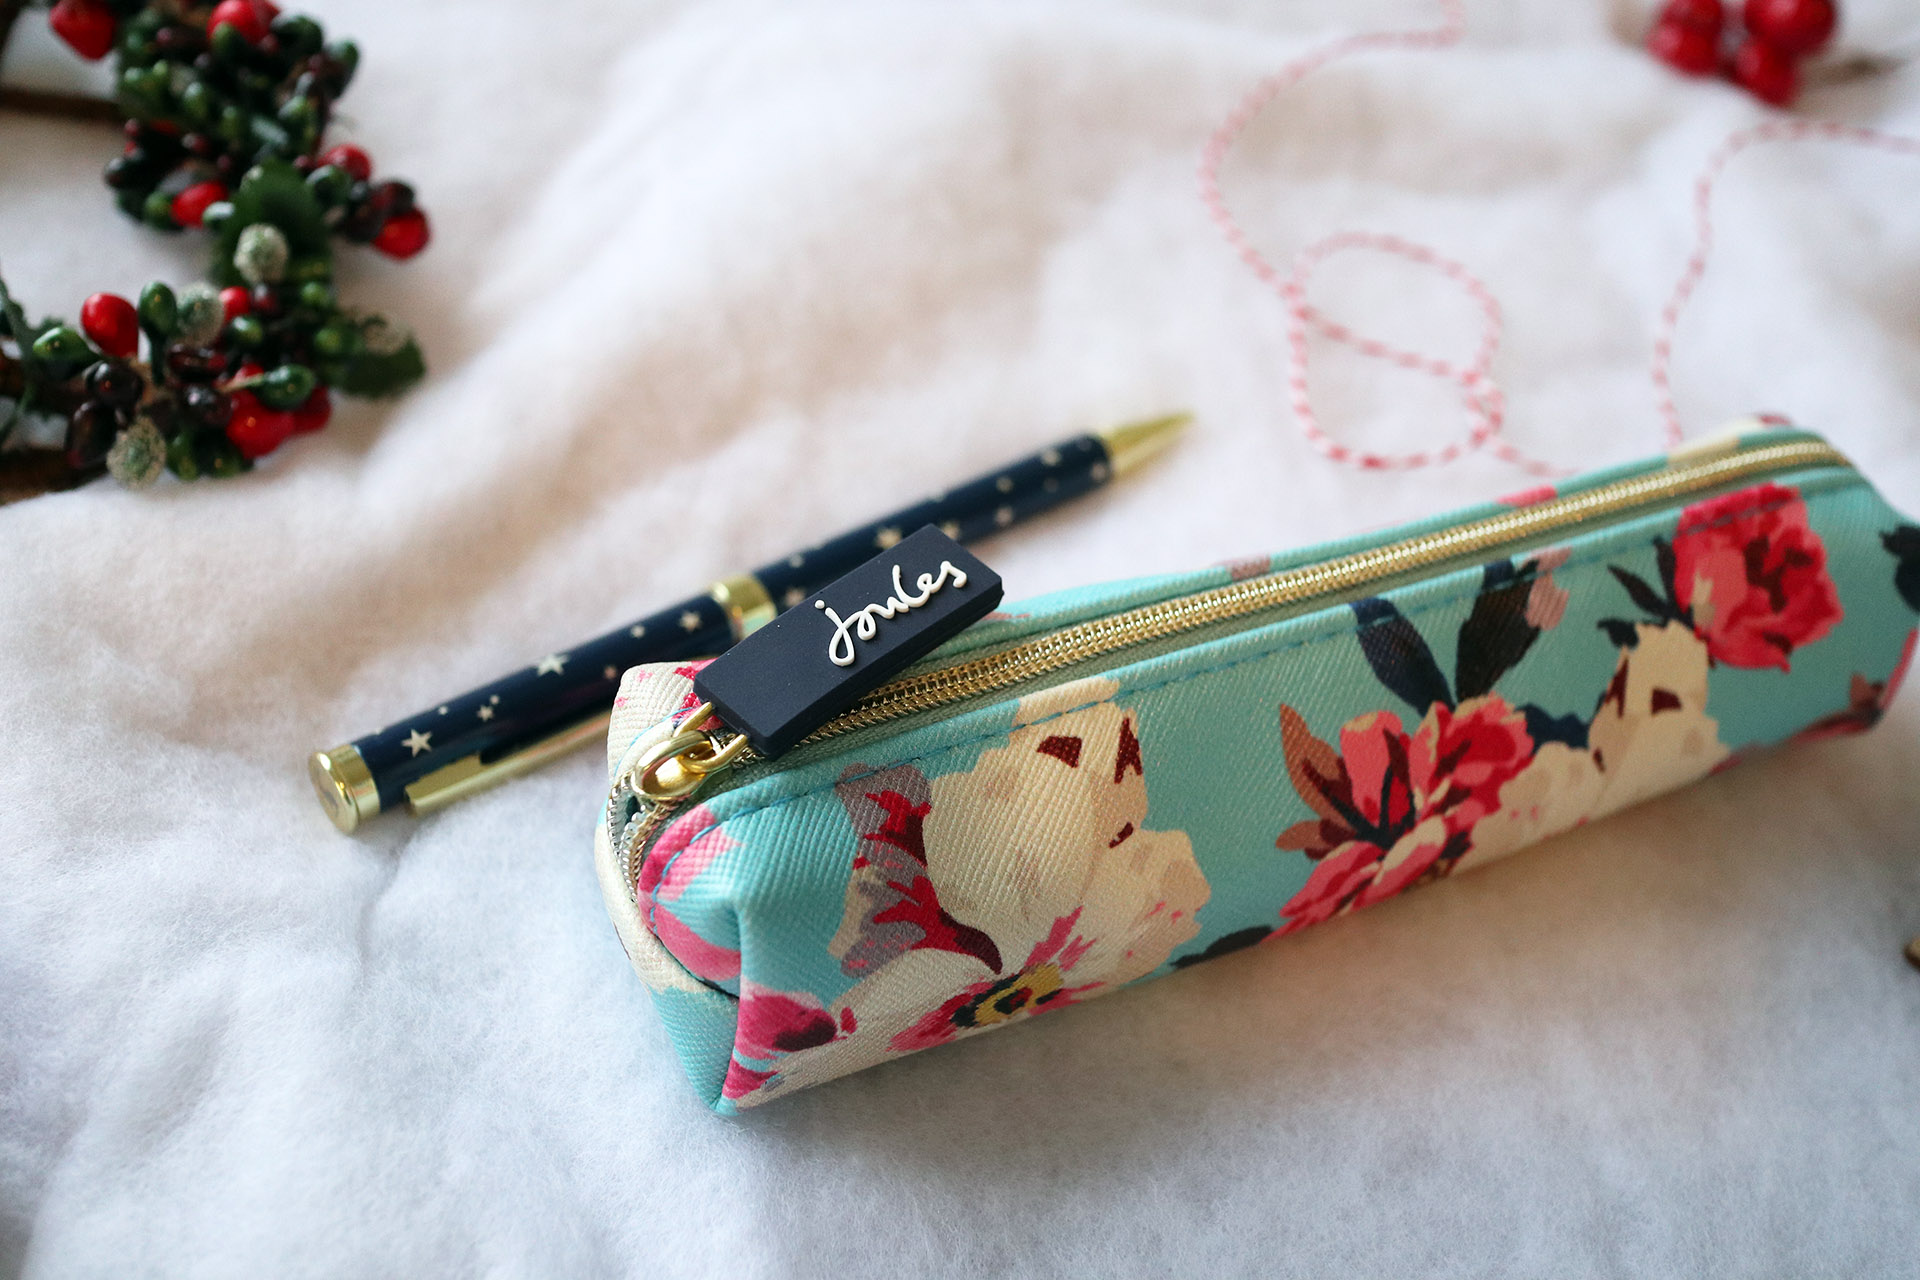 Close up of Joules pen set - one of my favourite Boots Christmas gifts